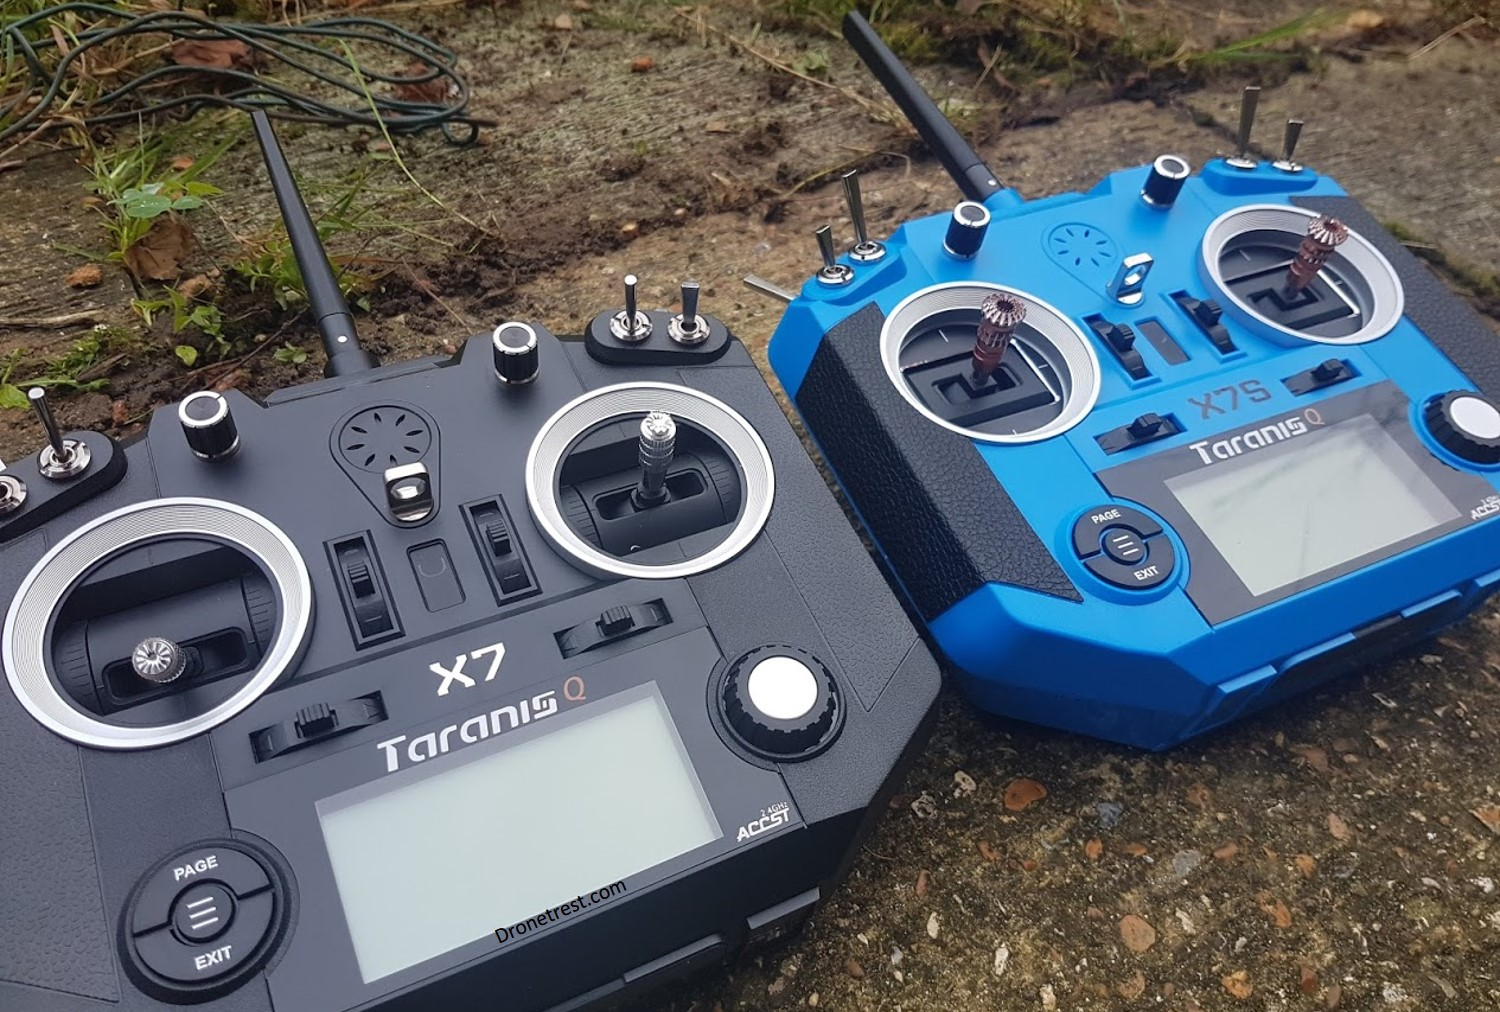 Frsky Taranis 🌩️ Q X7 VS Q X7S Compared 🎮 – Which one should you buy?